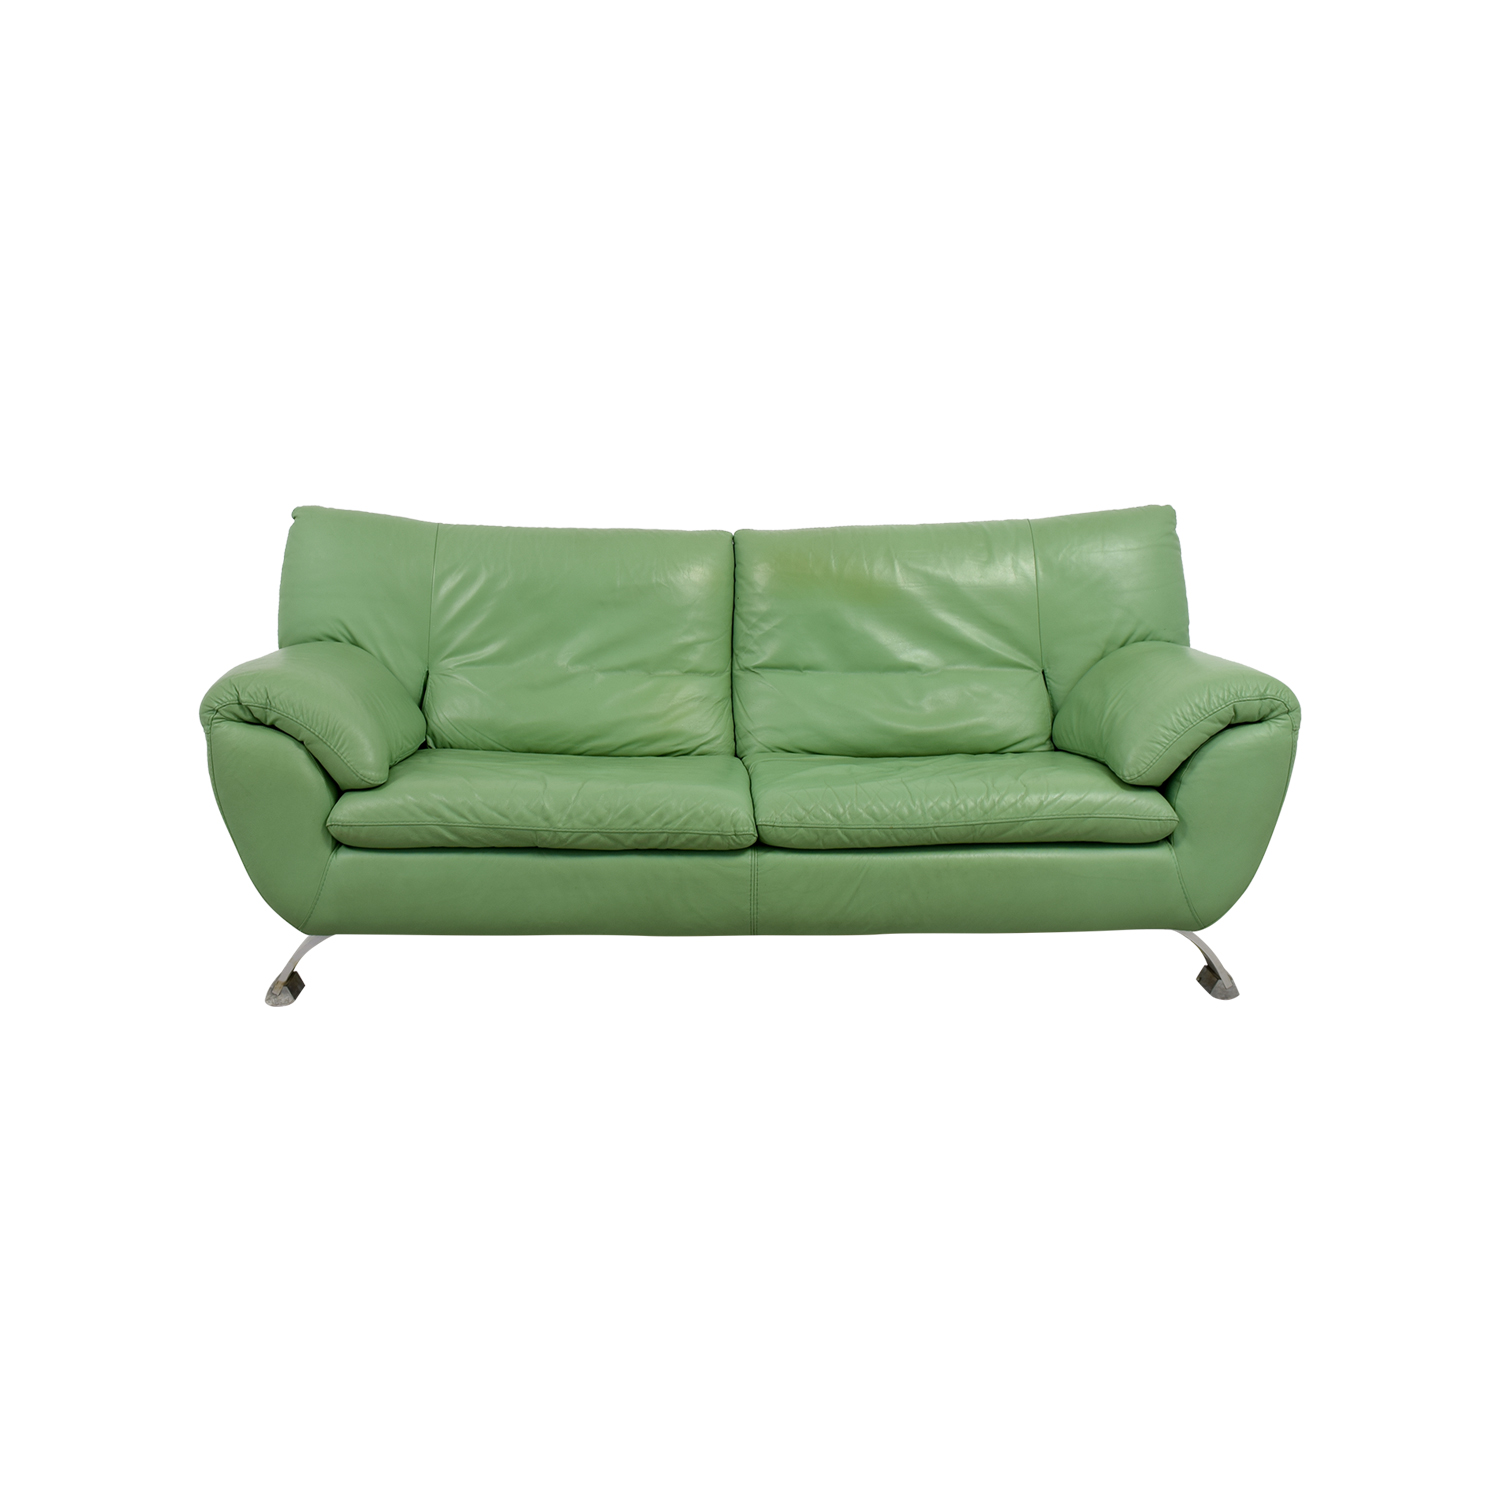 67 Off Nicoletti Nicoletti Green Leather Sofa Sofas